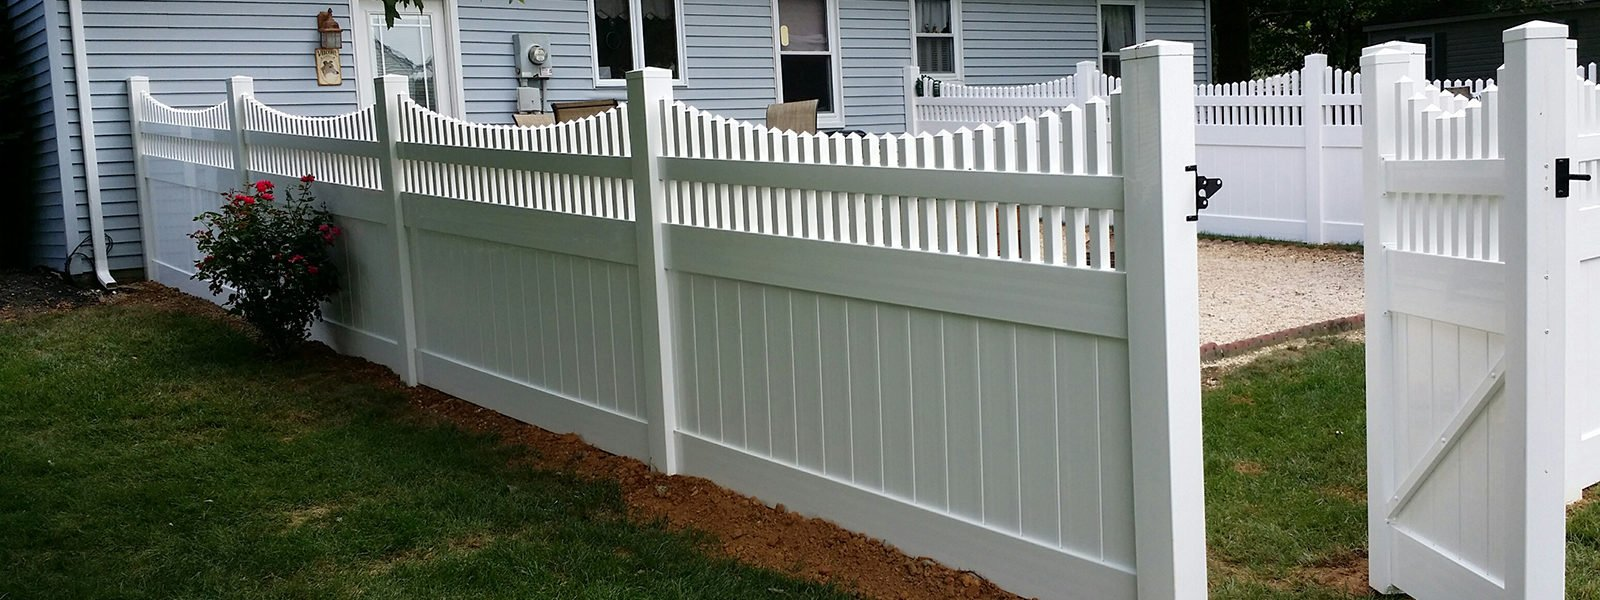 White Vinyl Fence With Spindle Top And Gate